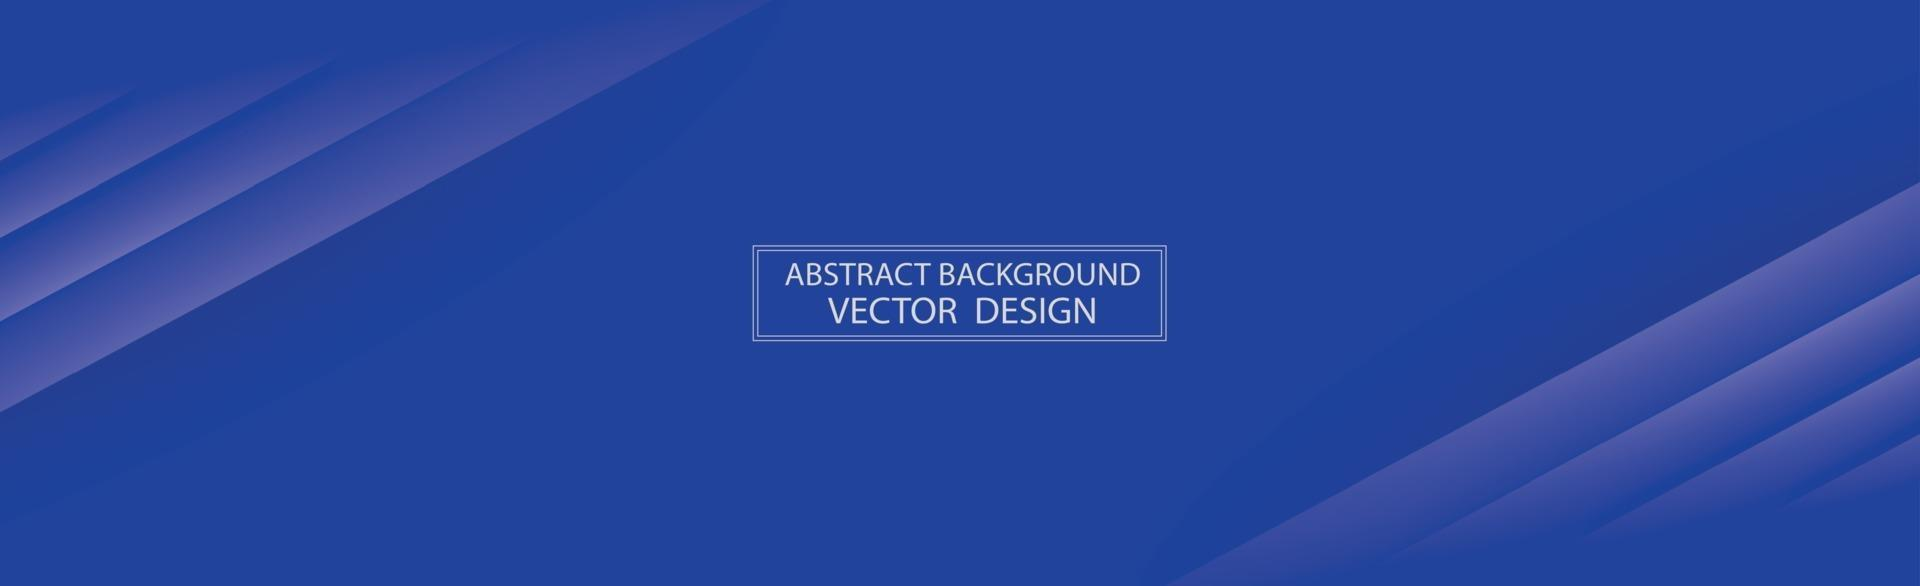 Panoramic abstract background with different shades of blue - Vector